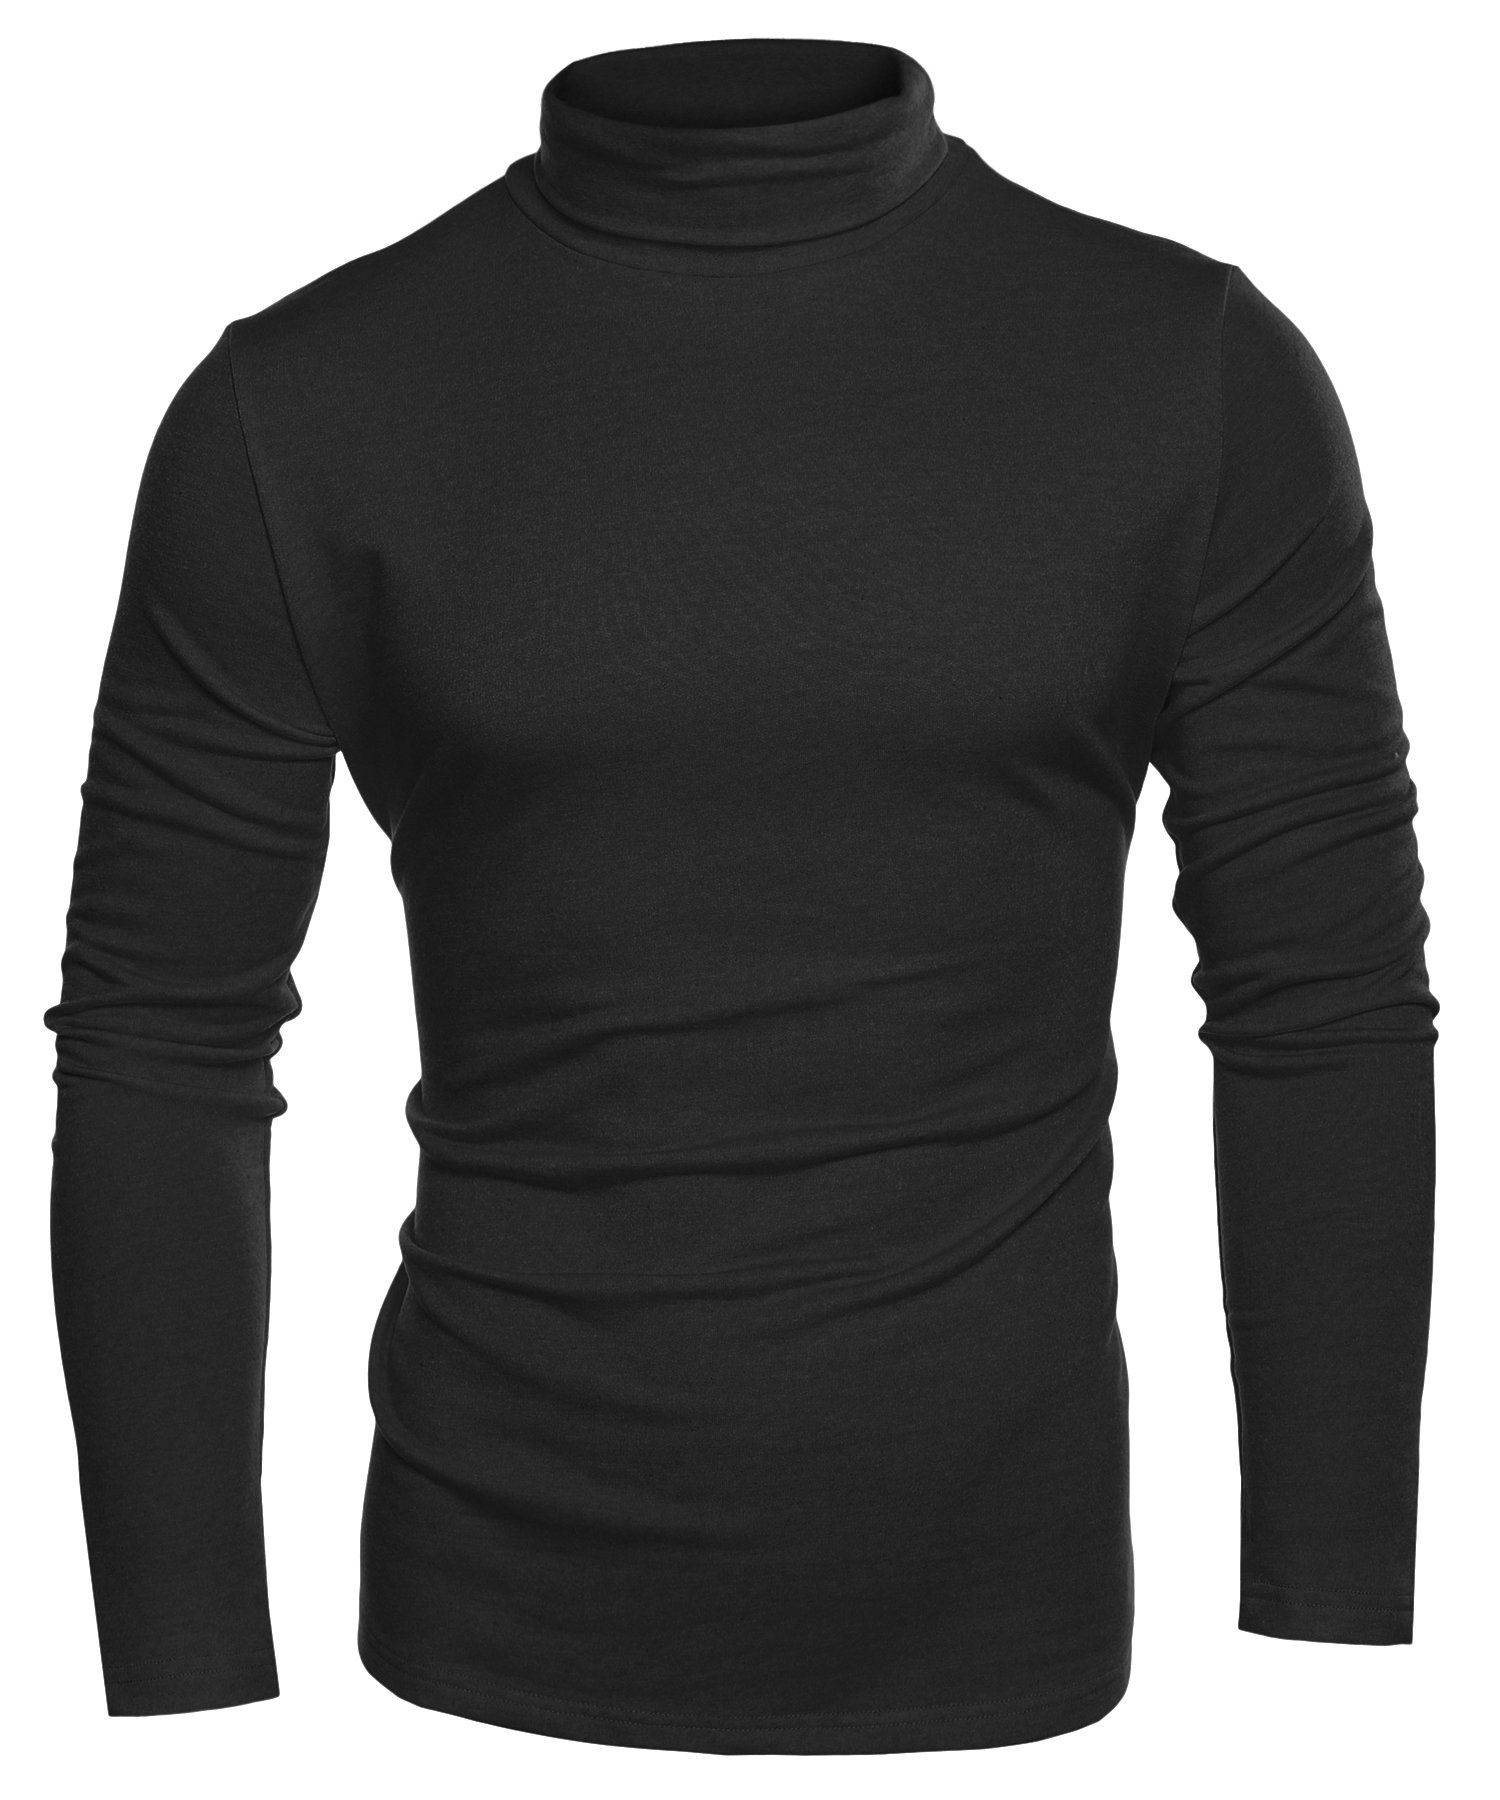 Coofandy Mens Casual Basic Thermal Turtleneck Slim Fit Pullover Thermal Sweaters, Black, XX-Large